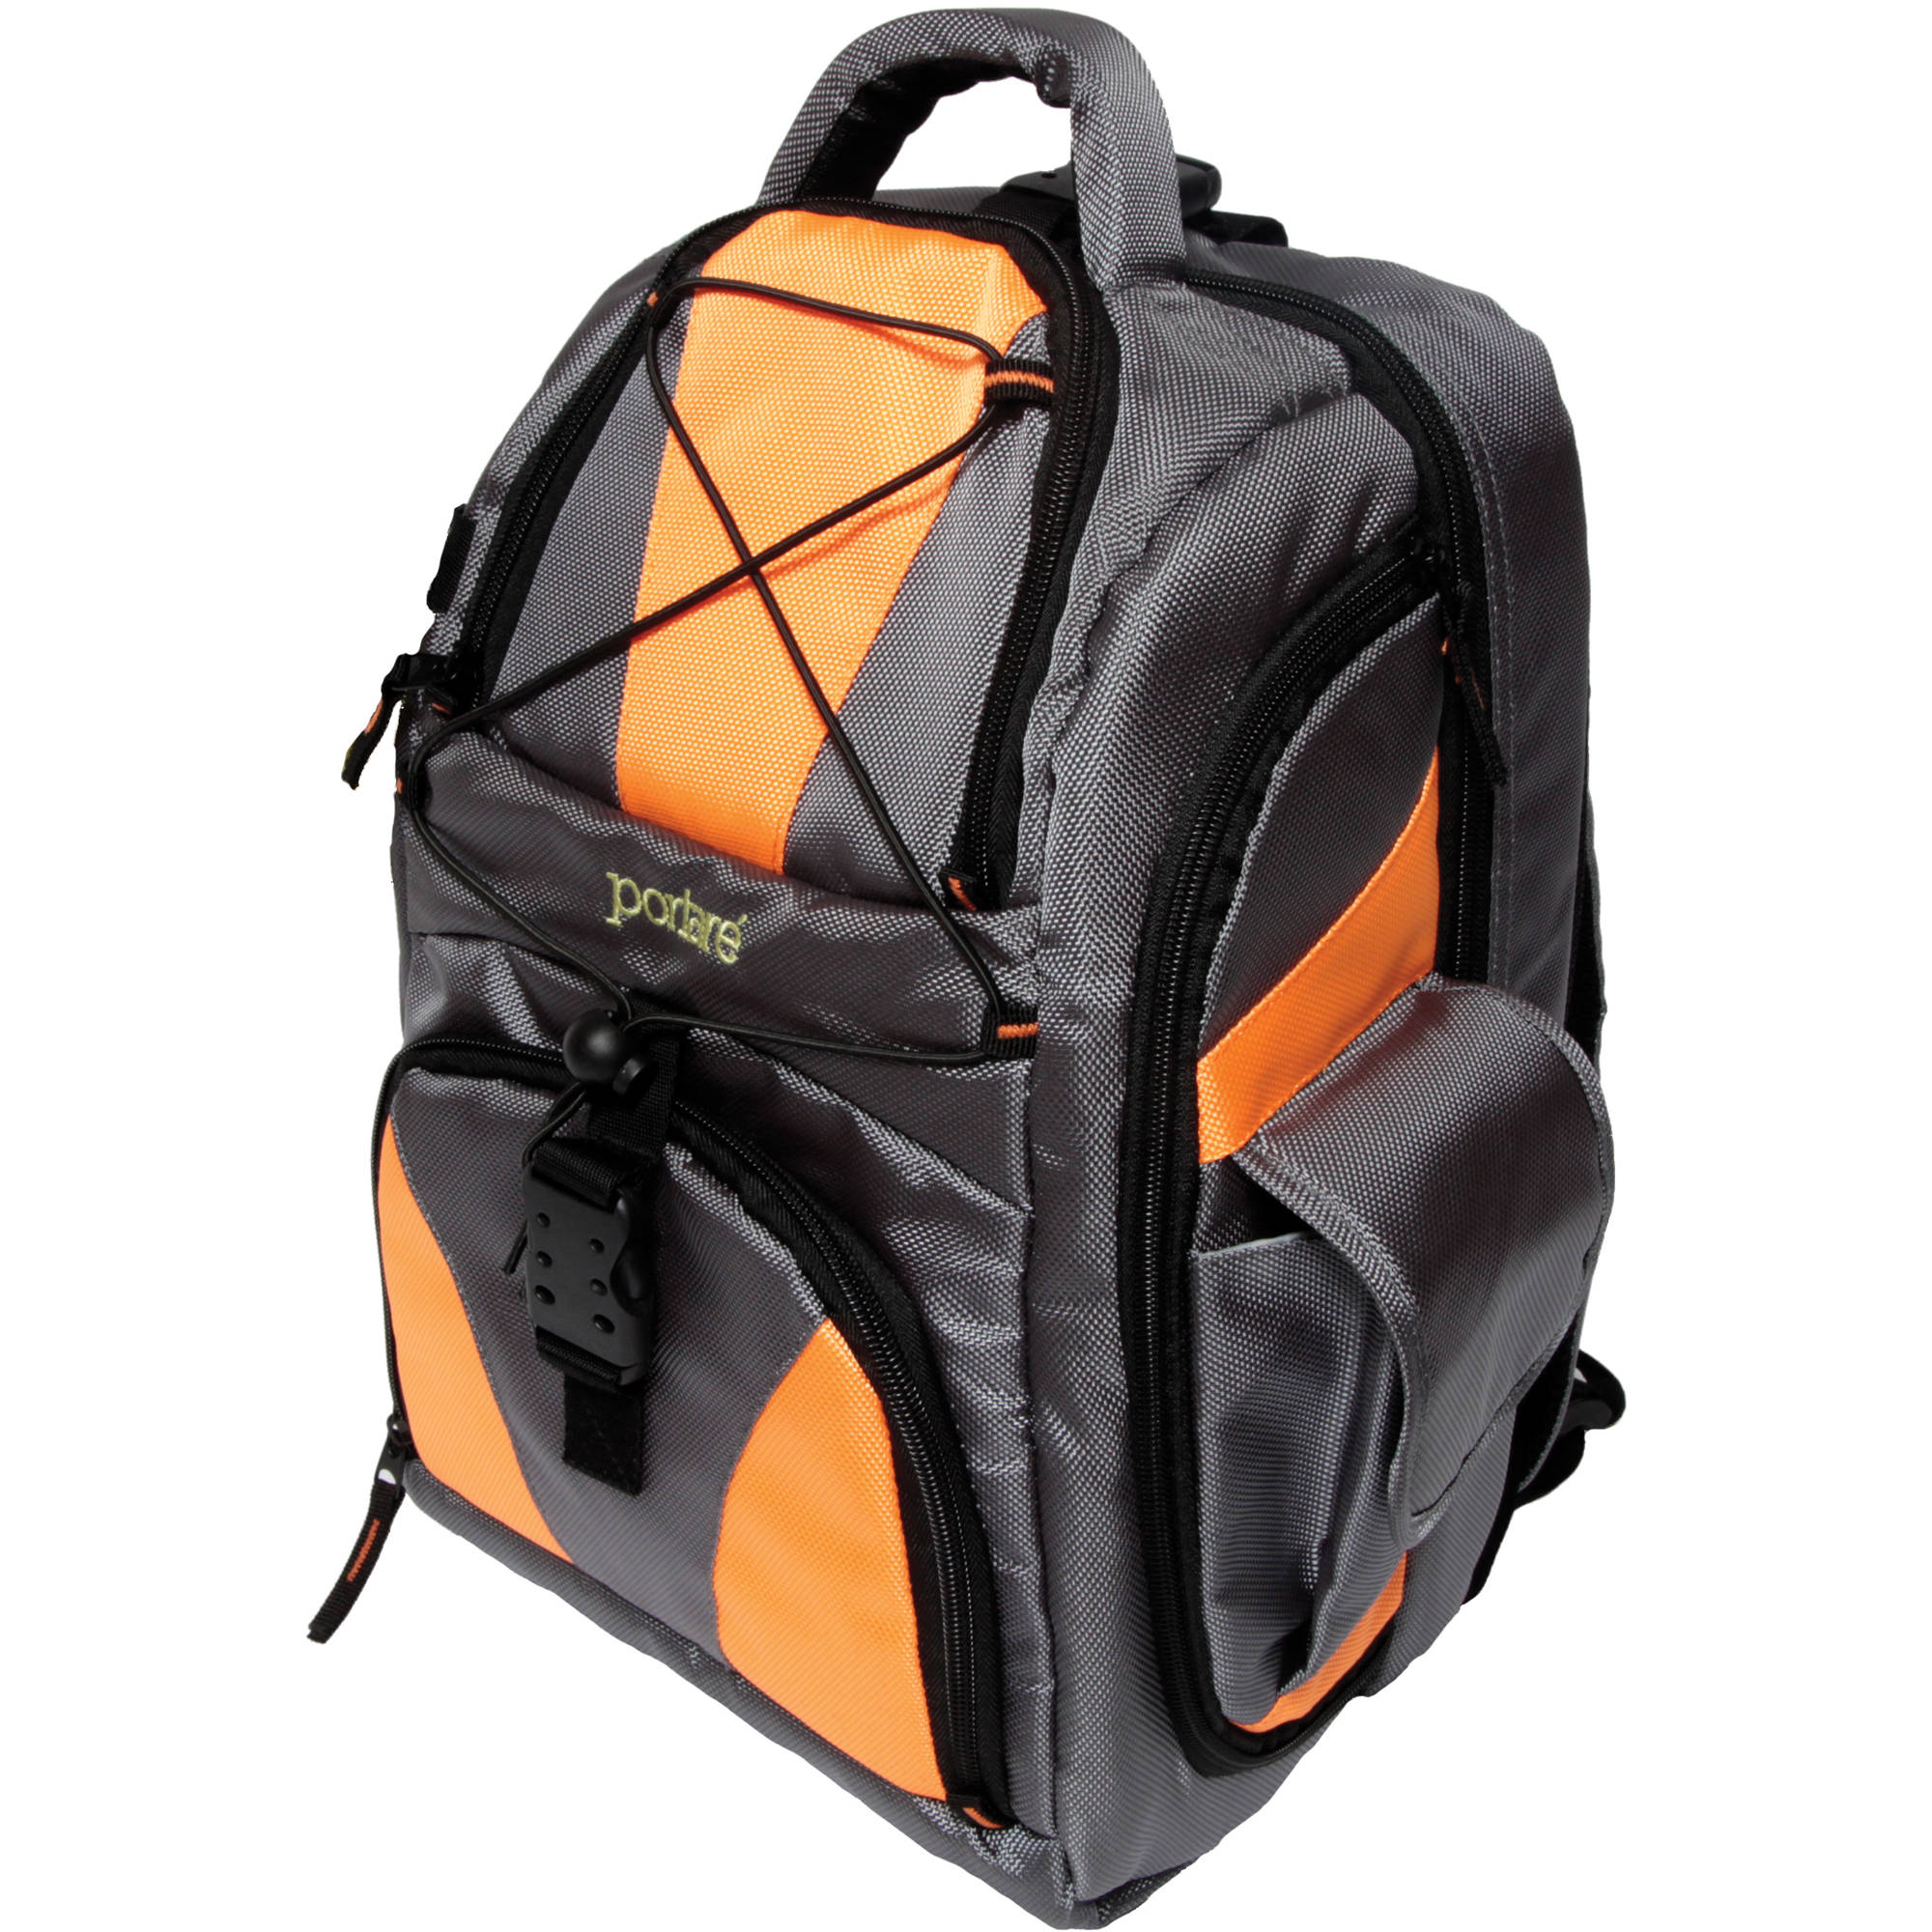 Portare' PBP2-B Multi Use Backpack for Camera/Laptop/iPad ...